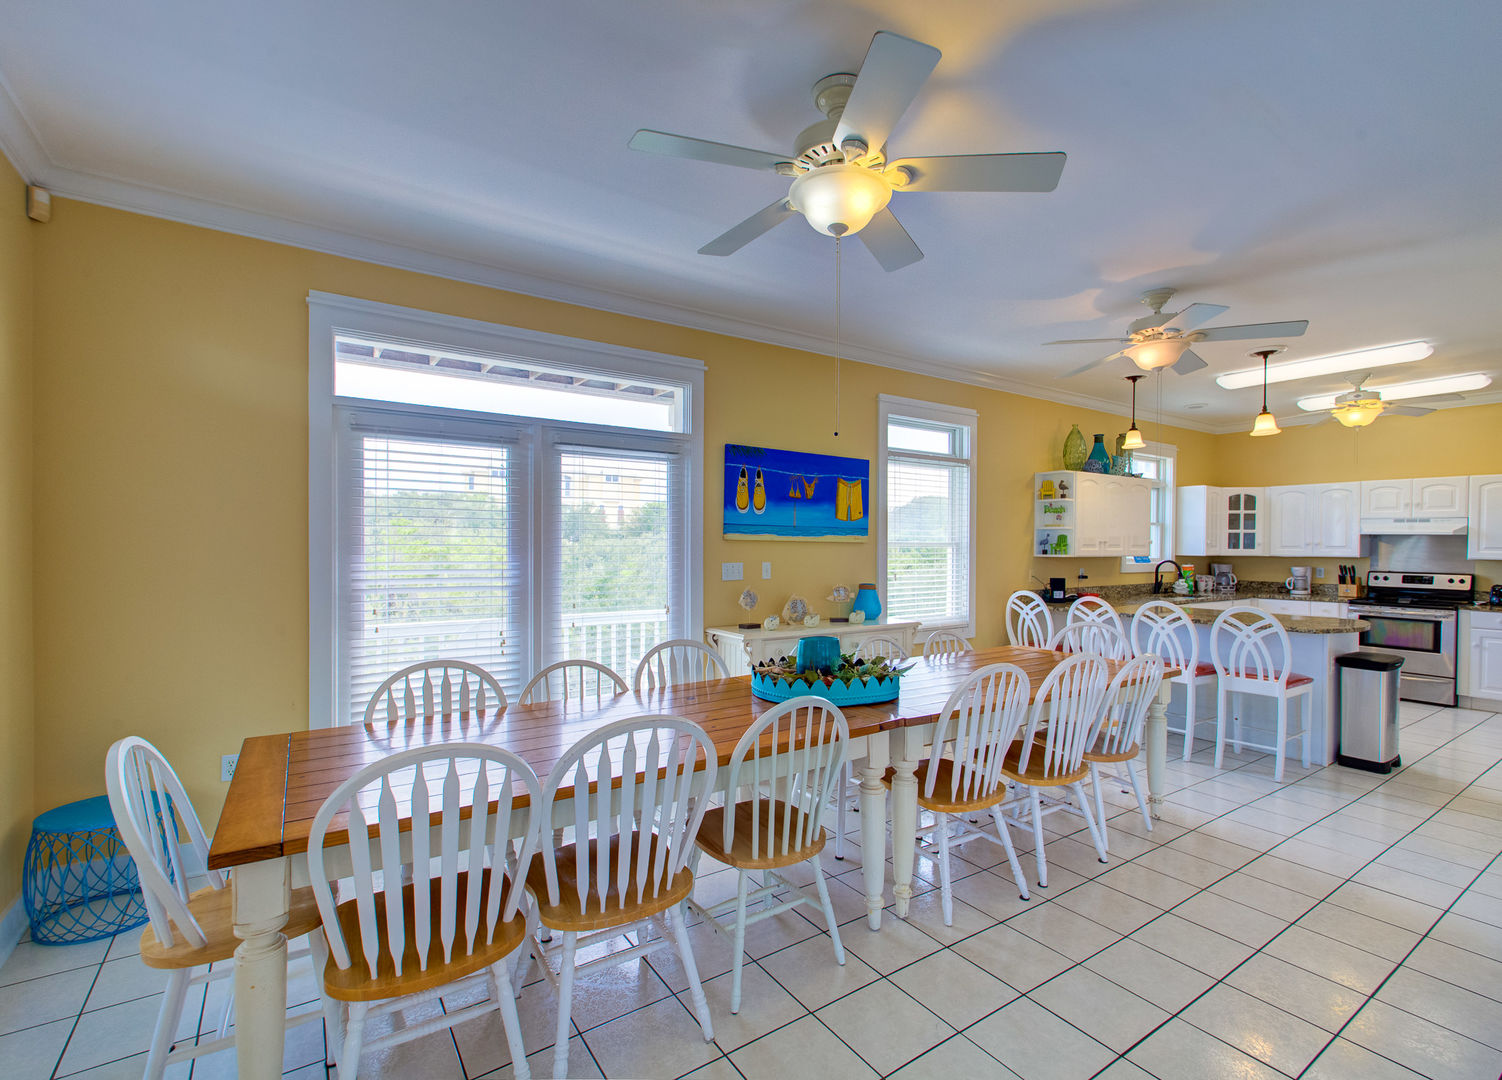 Big Dining Table, Chairs, Kitchen Counter, Stools, Ceiling Fans, and Windows.